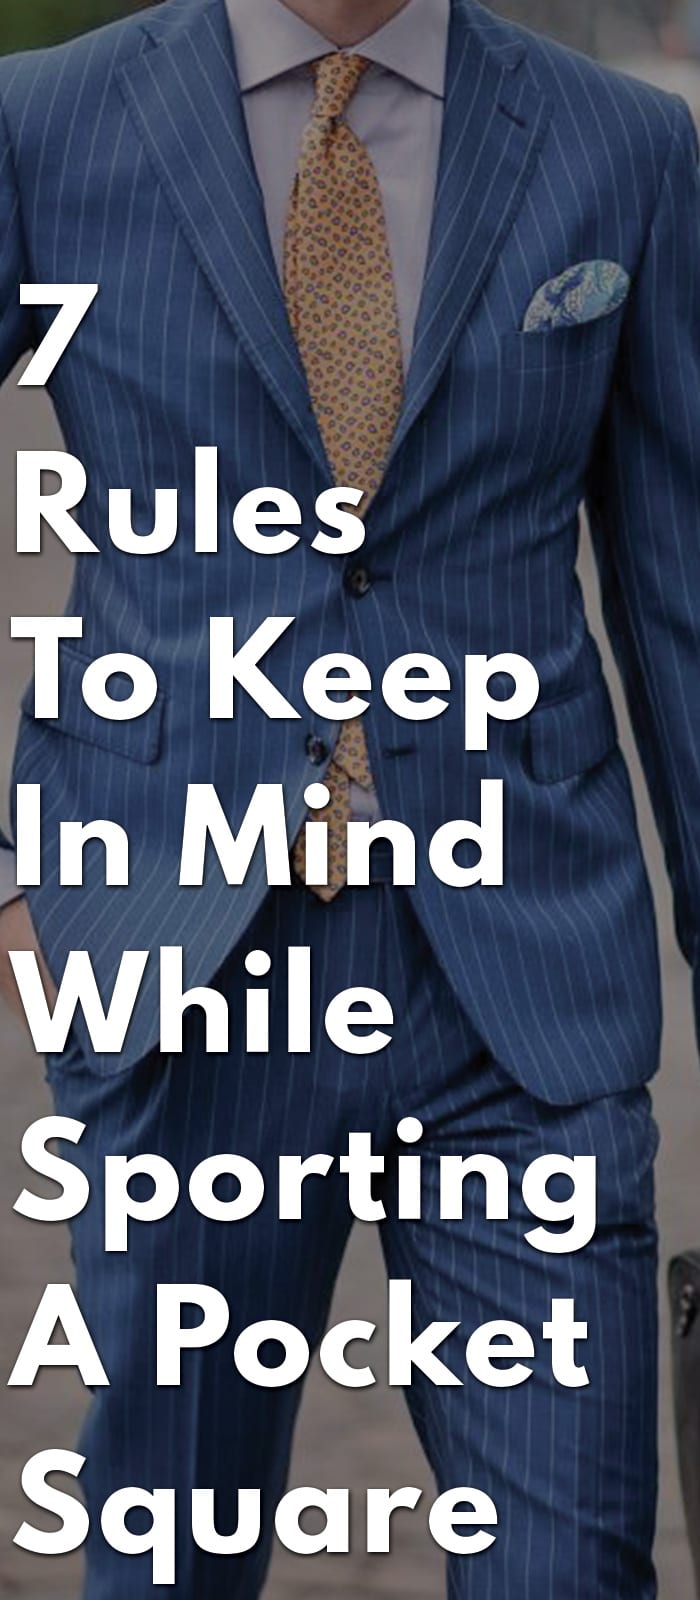 7-Rules-To-Keep-In-Mind-While-Sporting-A-Pocket-Square